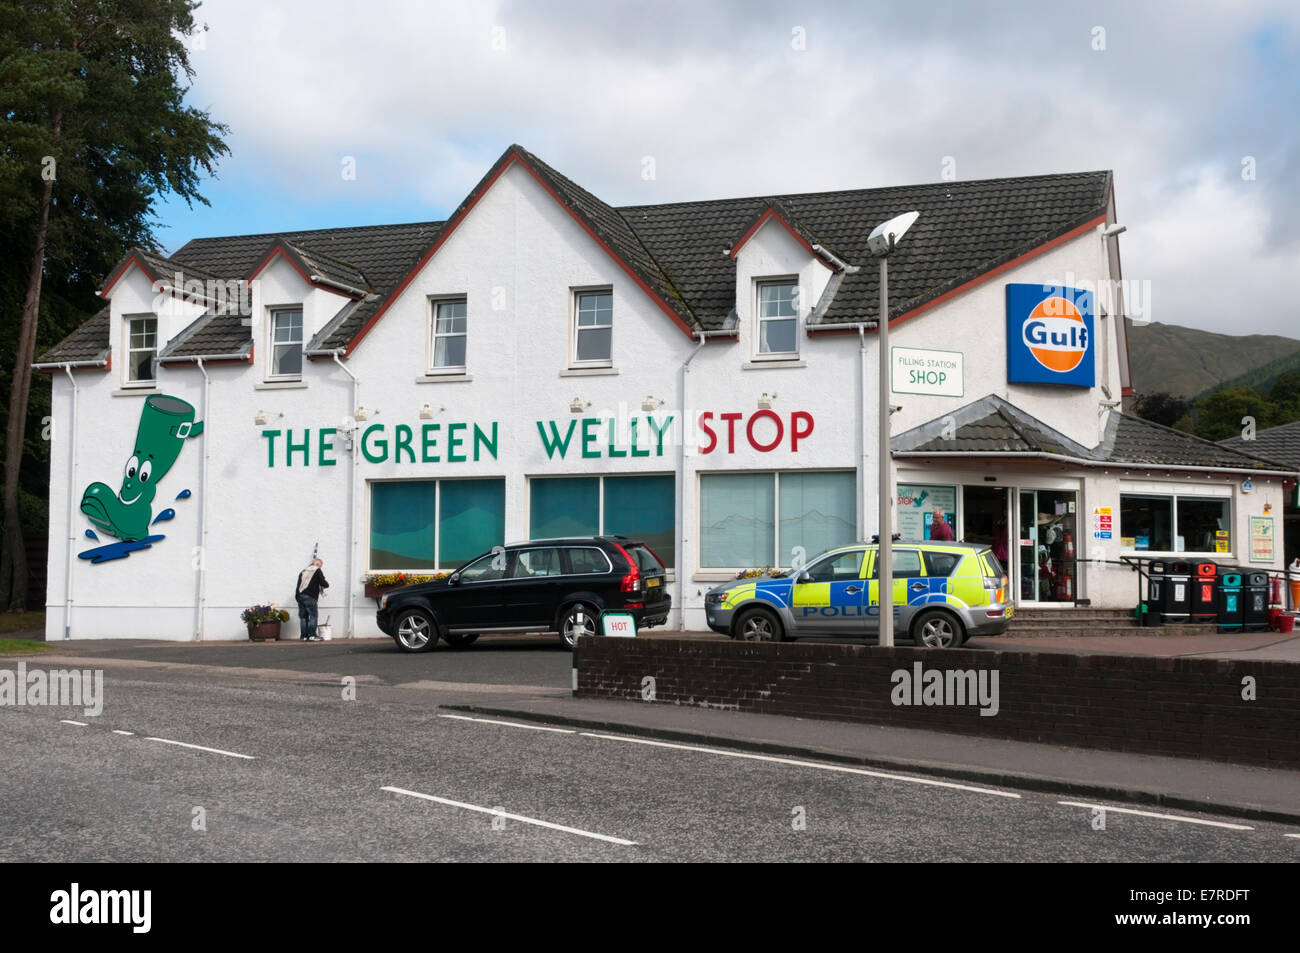 The Green Welly Stop in Tyndrum, Scotland. Stock Photo